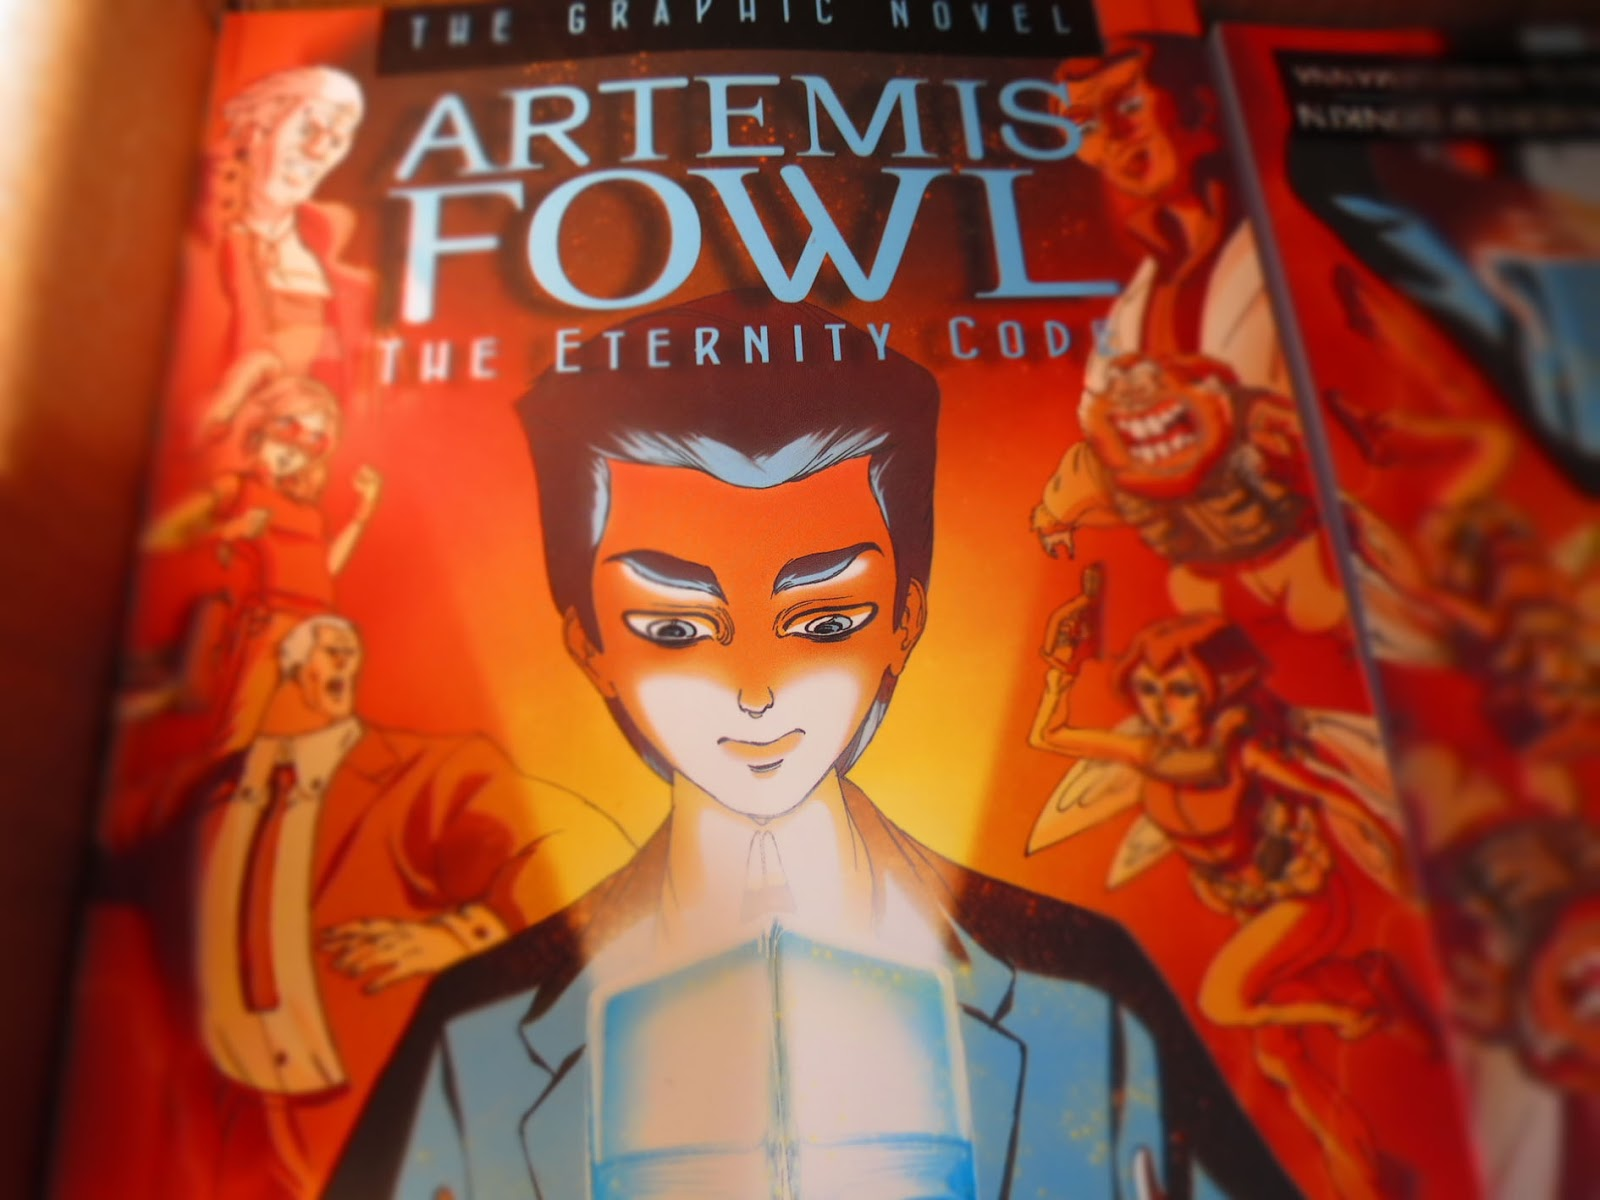 Artemis Fowl 03  The Eternity Code Graphic Novel